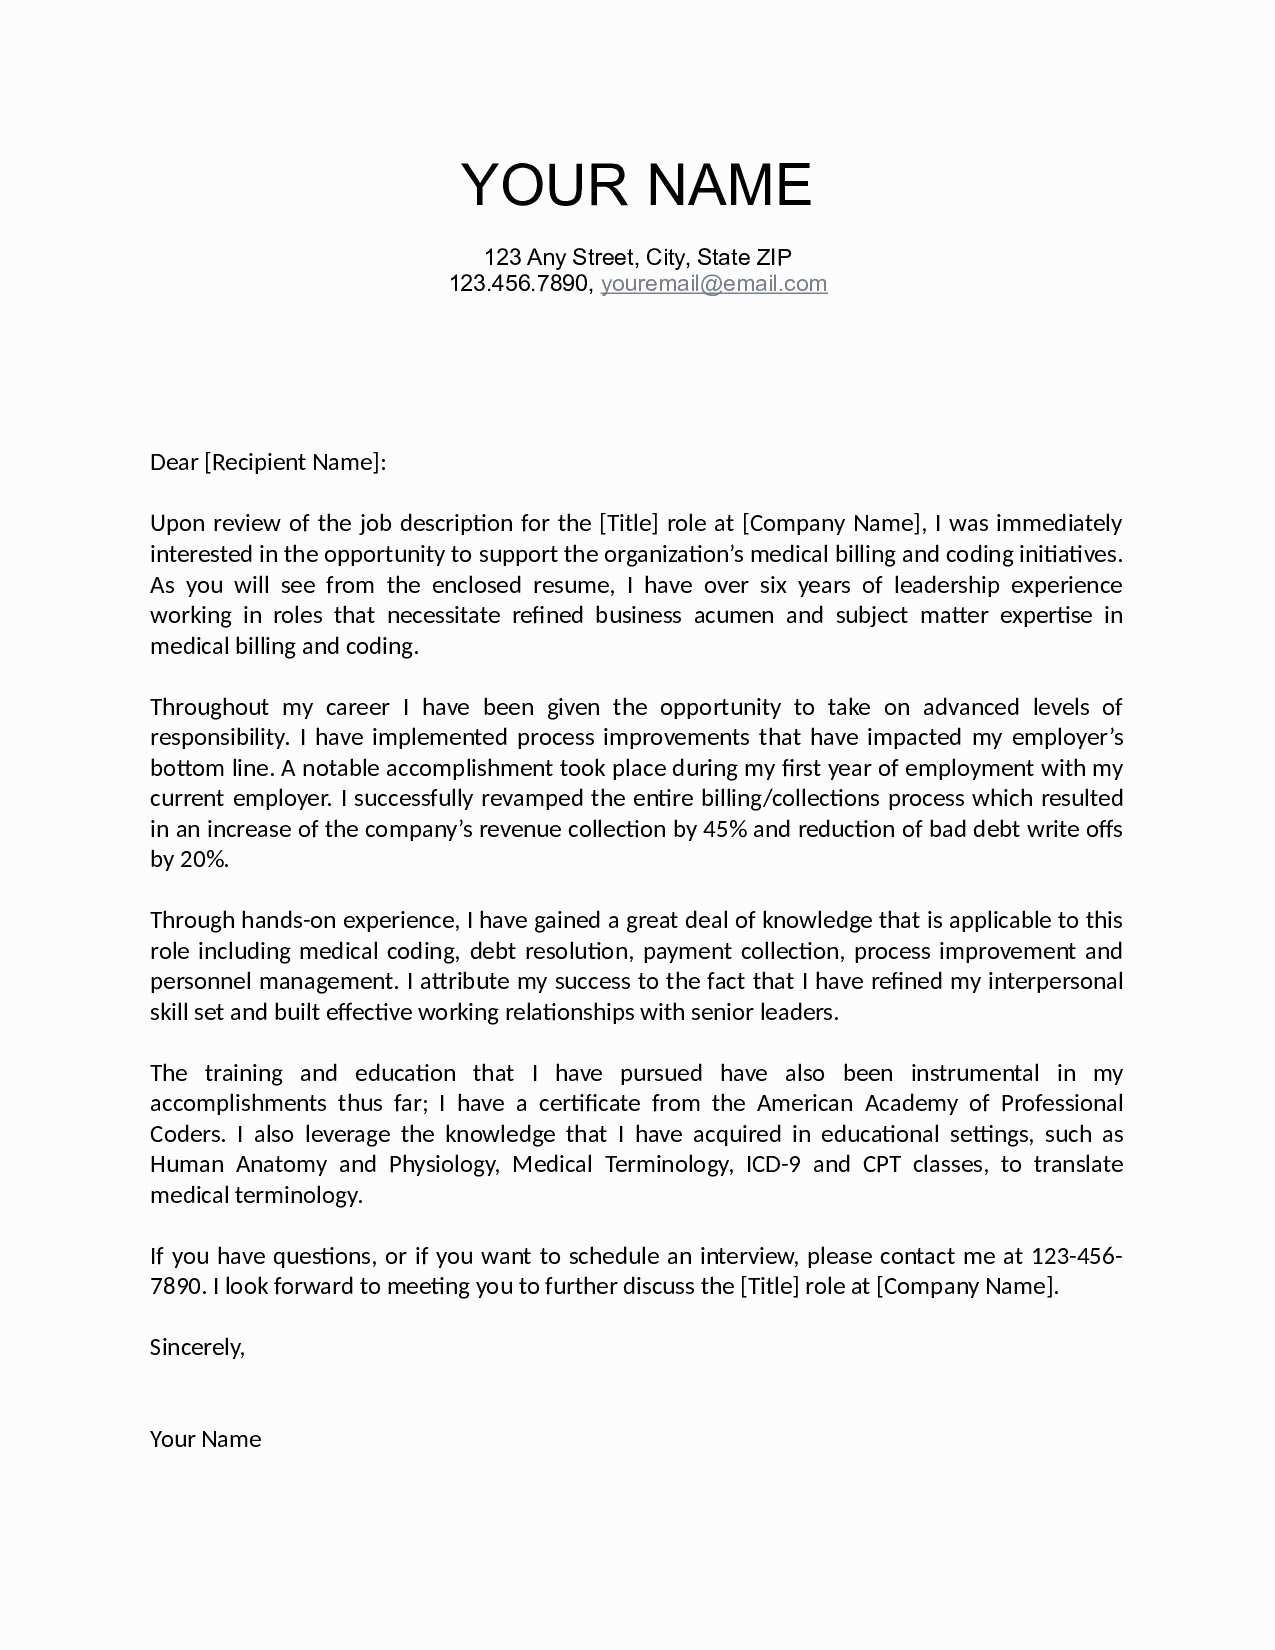 real estate offer letter template free Collection-tn visa offer letter template 19-b